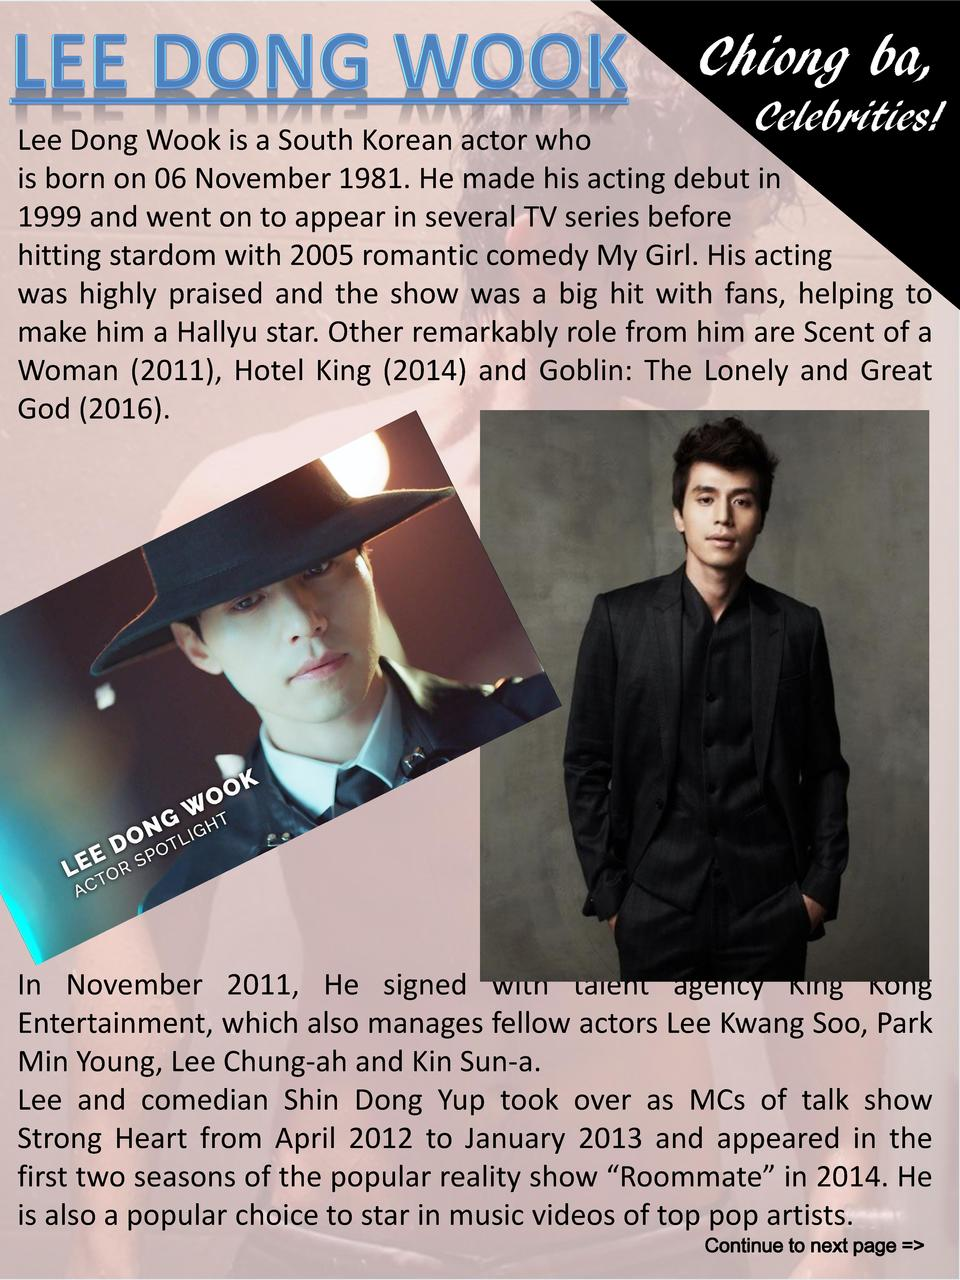 Chiong ba, Celebrities   Lee Dong Wook is a South Korean actor who is born on 06 November 1981. He made his acting debut i...